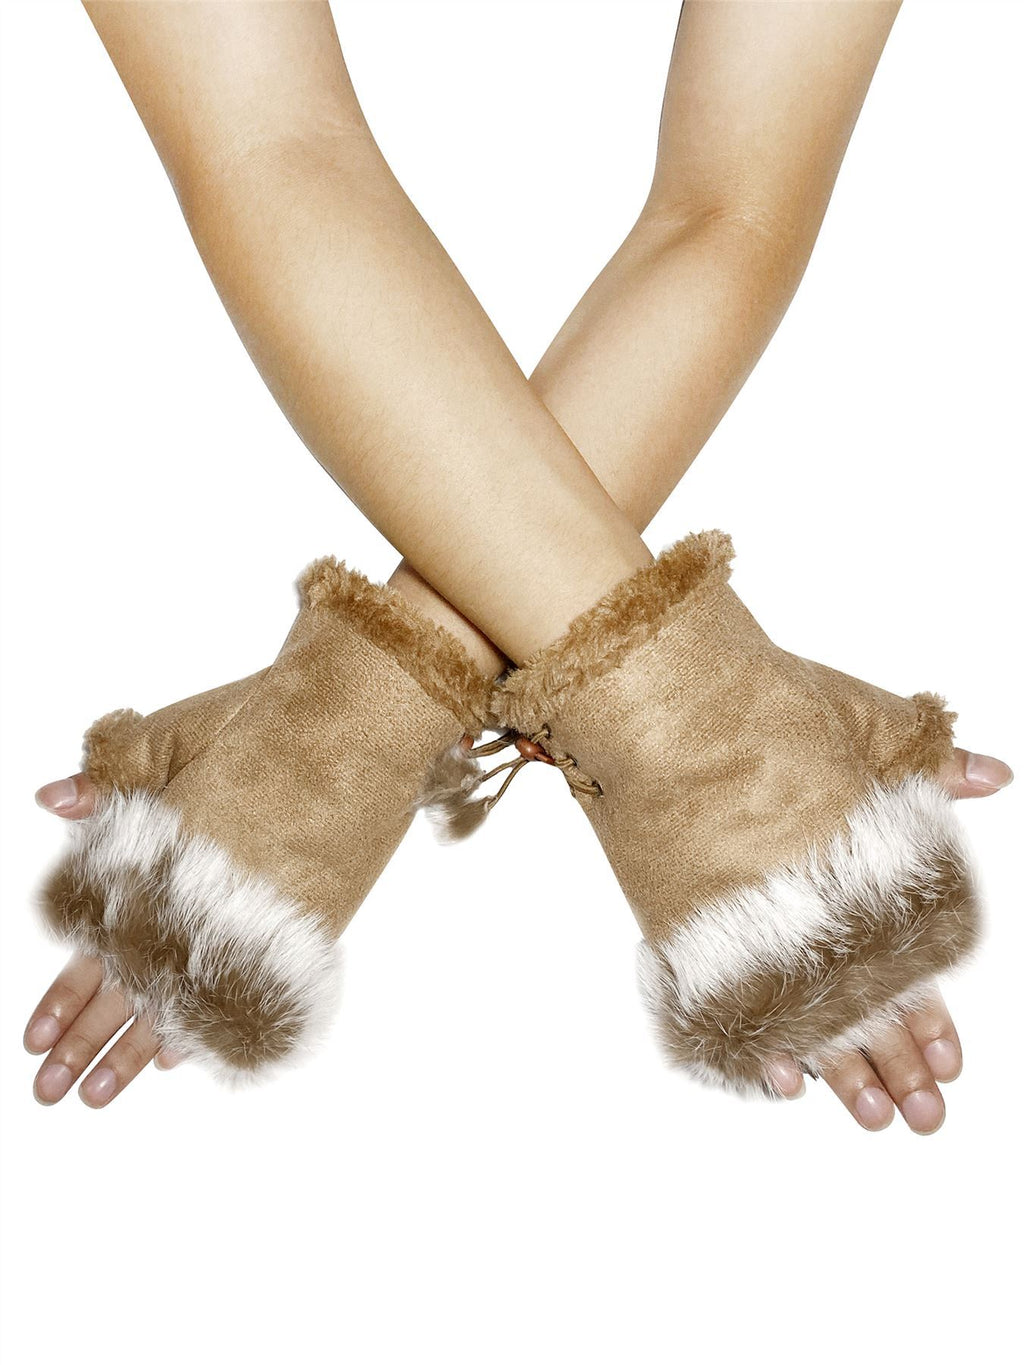 Plain Real Fur Fingerless Mittens Grey - The Tulip Tree Chiddingstone